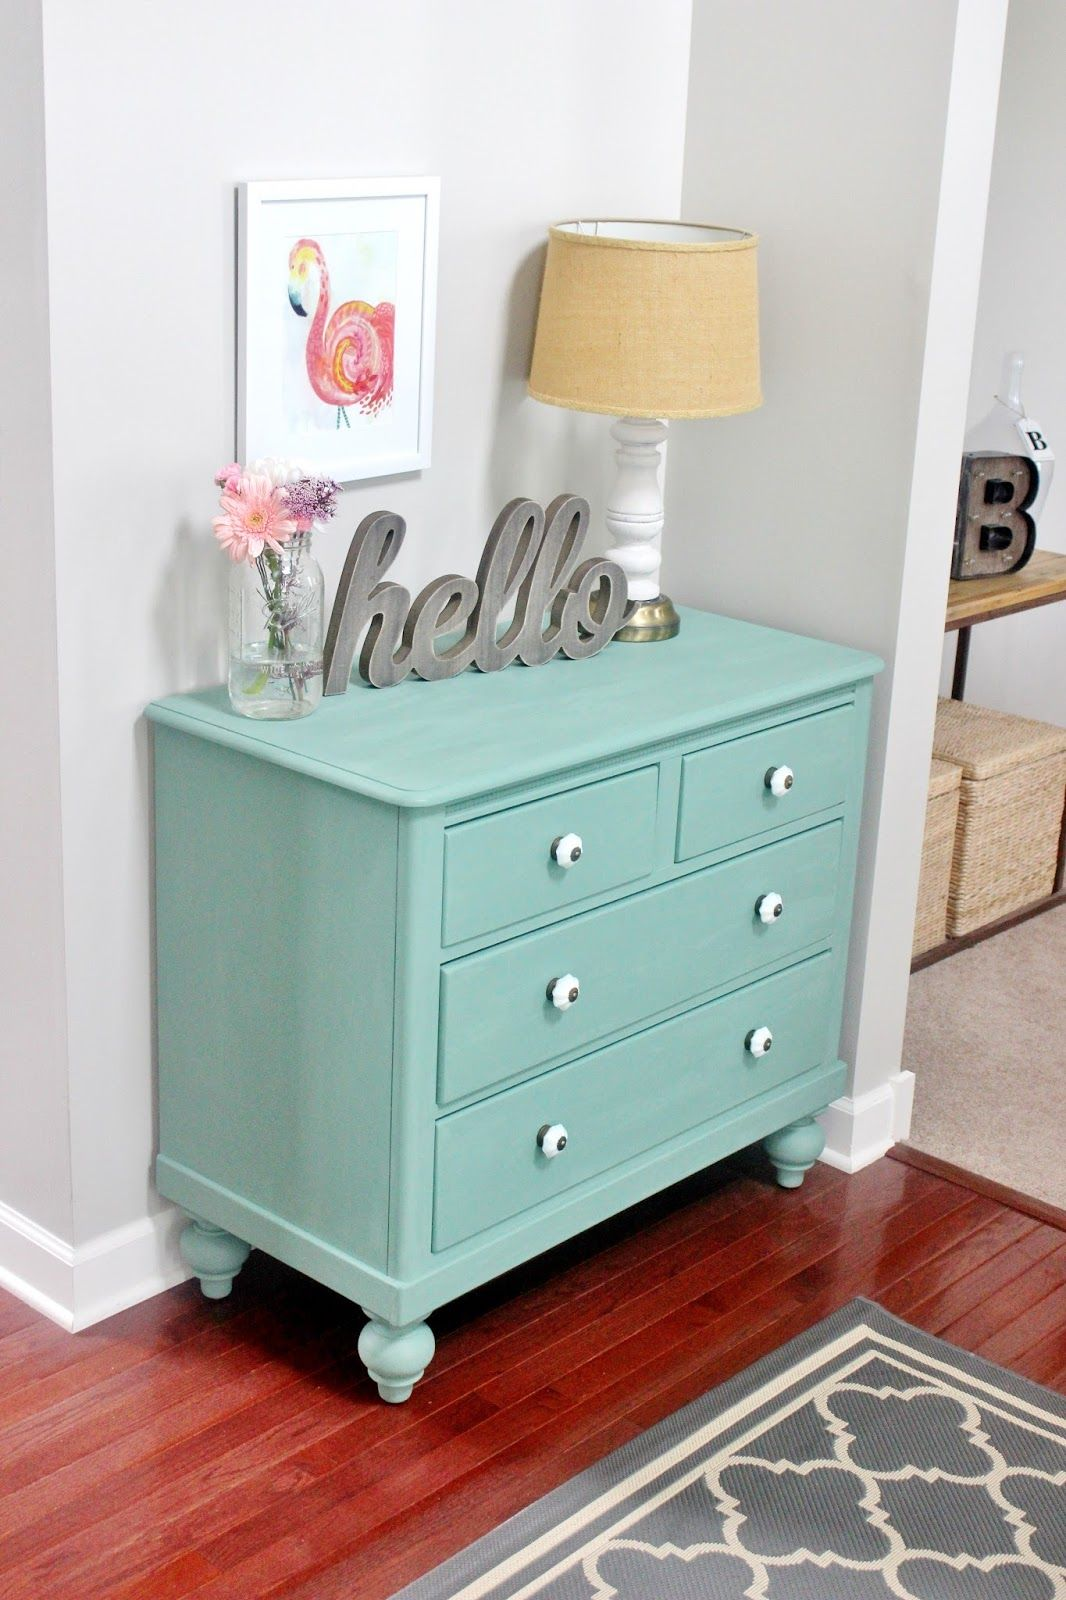 Meet pearl chalk paint dresser makeover cmoda muebles a do it yourself blog full of budget friendly decorating and craft ideas side by side well diy our way to a happy delightful home solutioingenieria Choice Image